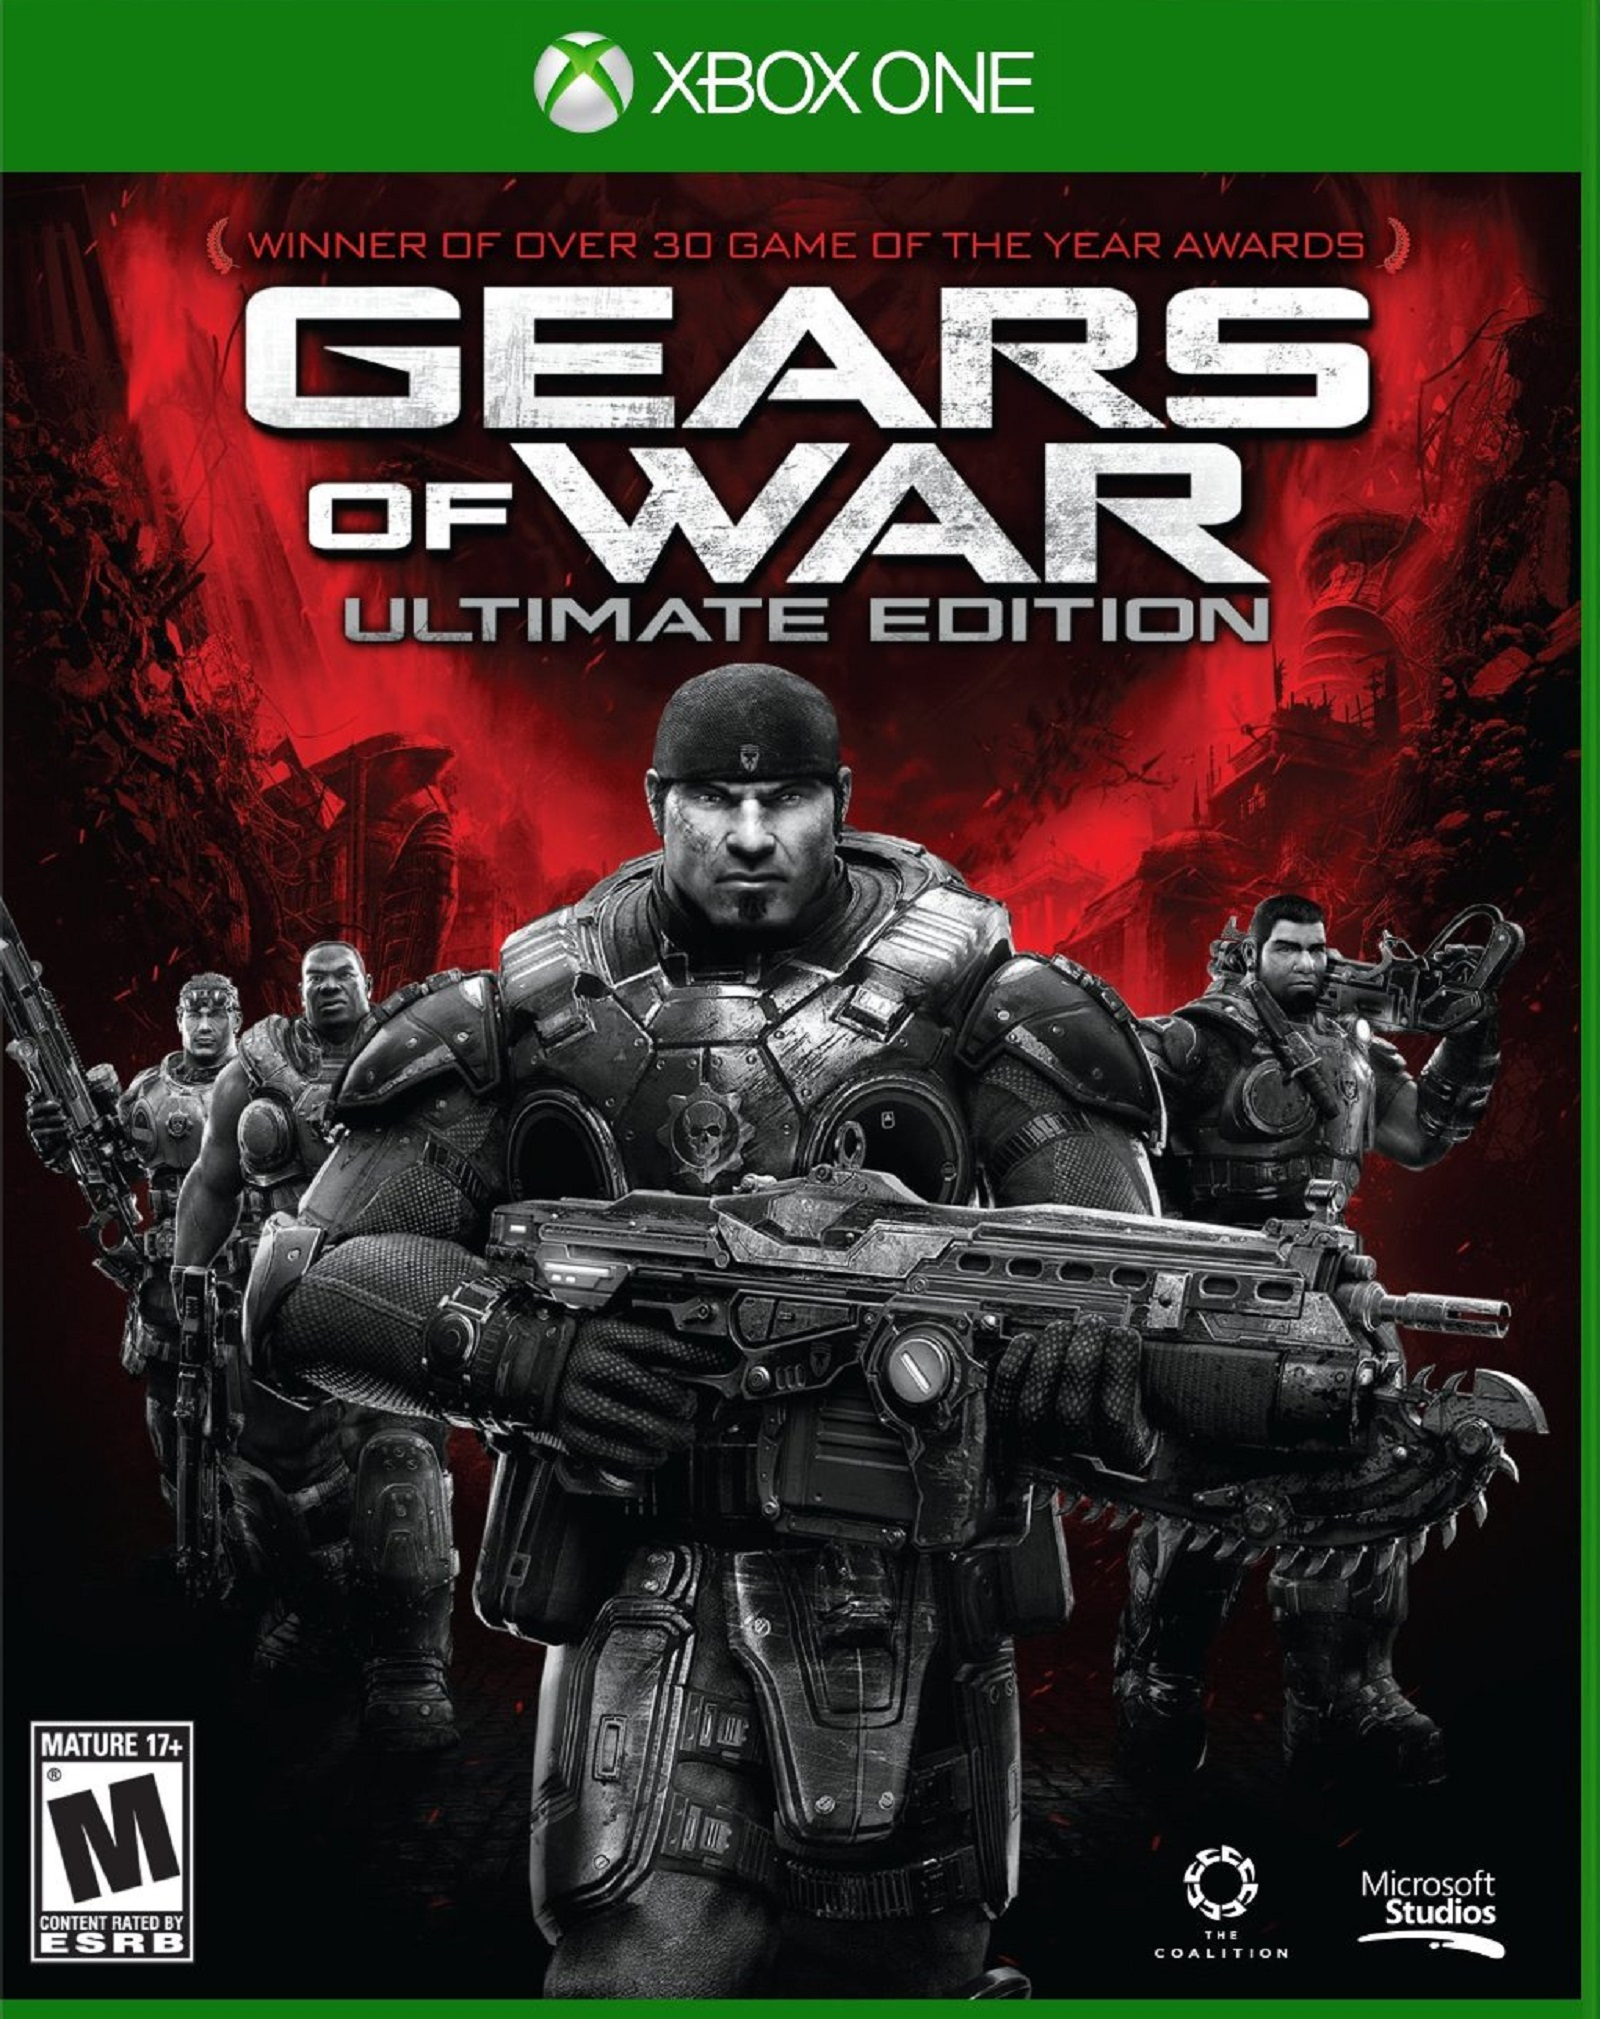 Xbox One Gears of War Ultimate Edition USA Box Artwork M for Mature